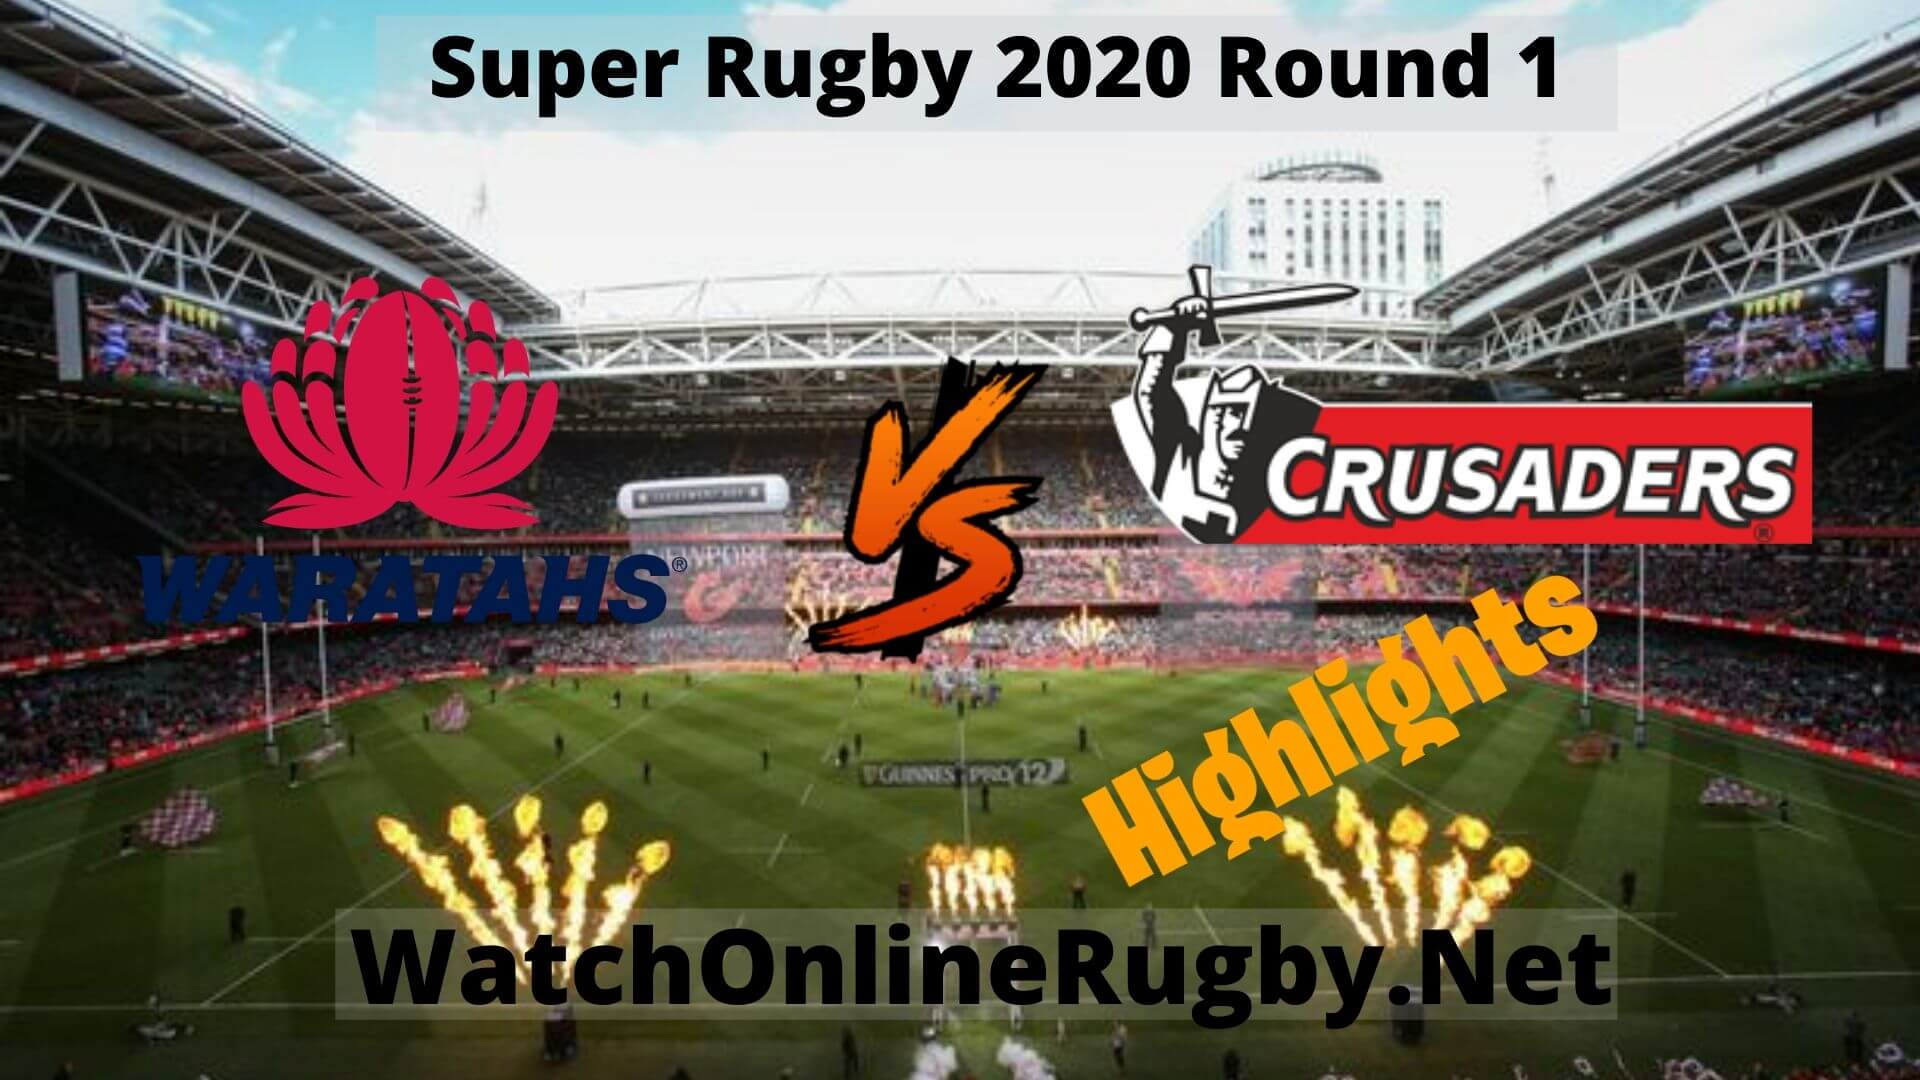 Waratahs Vs Crusaders Highlights Super Rugby 2020 Round 1